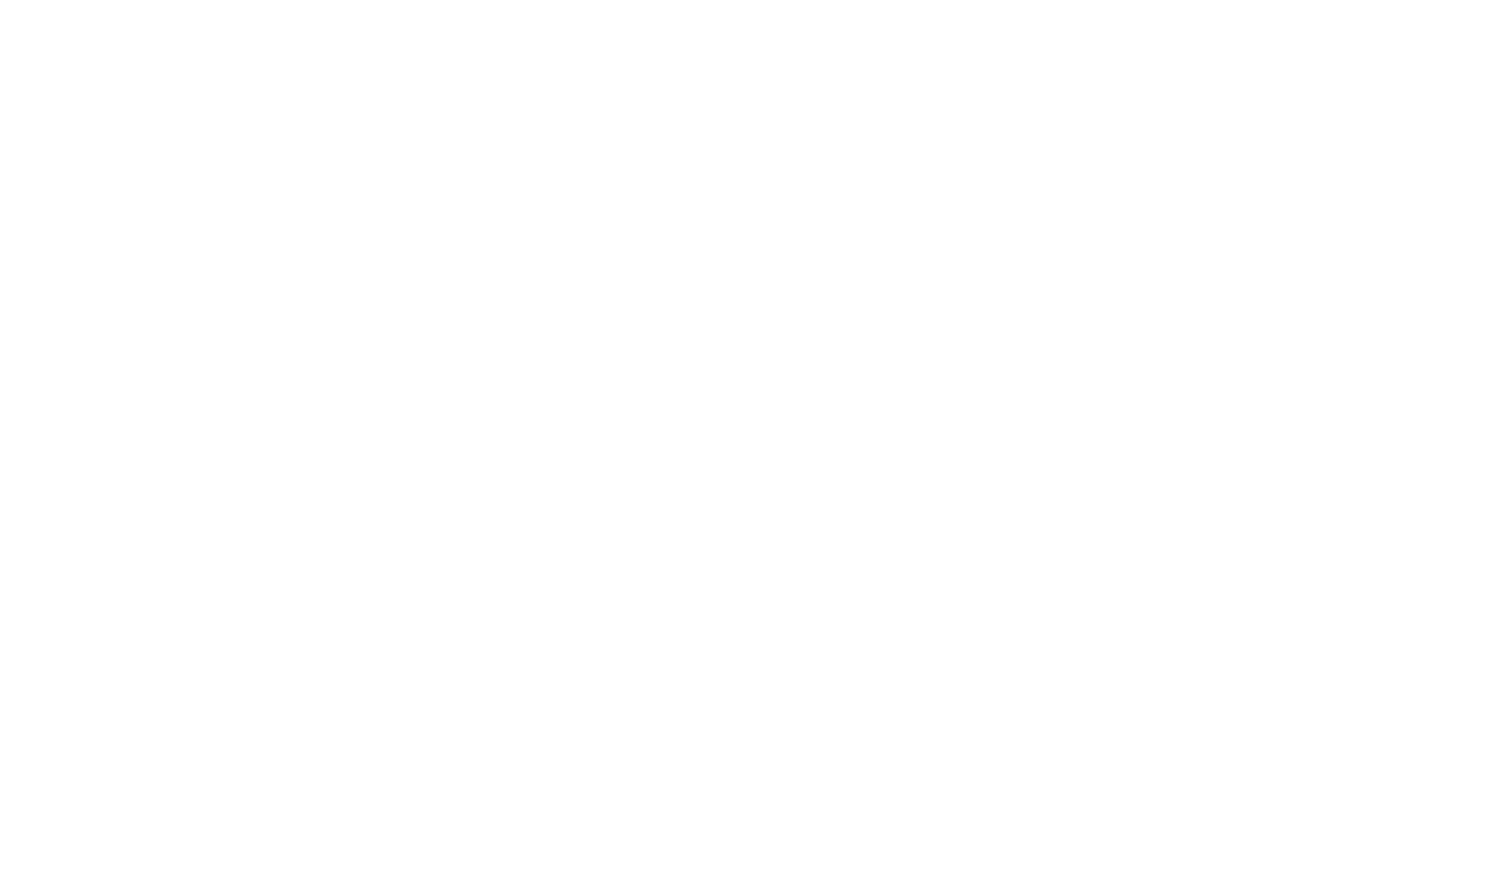 Gotham City Acupuncture